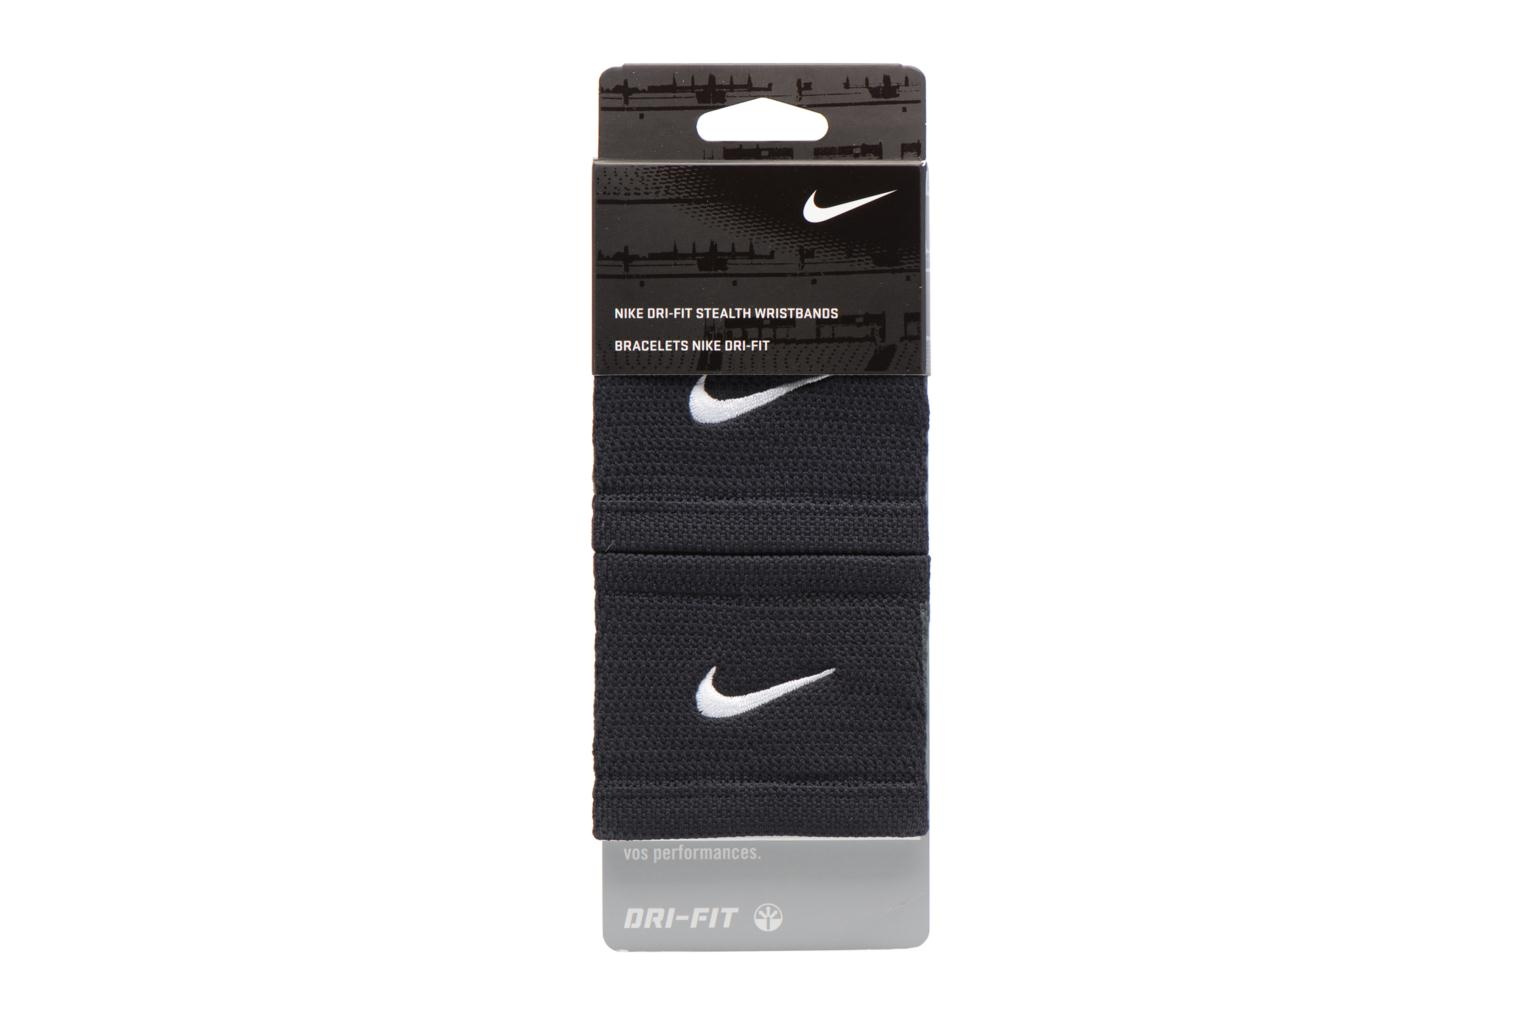 Miscellaneous Nike DRI-FIT STEALTH WRISTBANDS Black model view